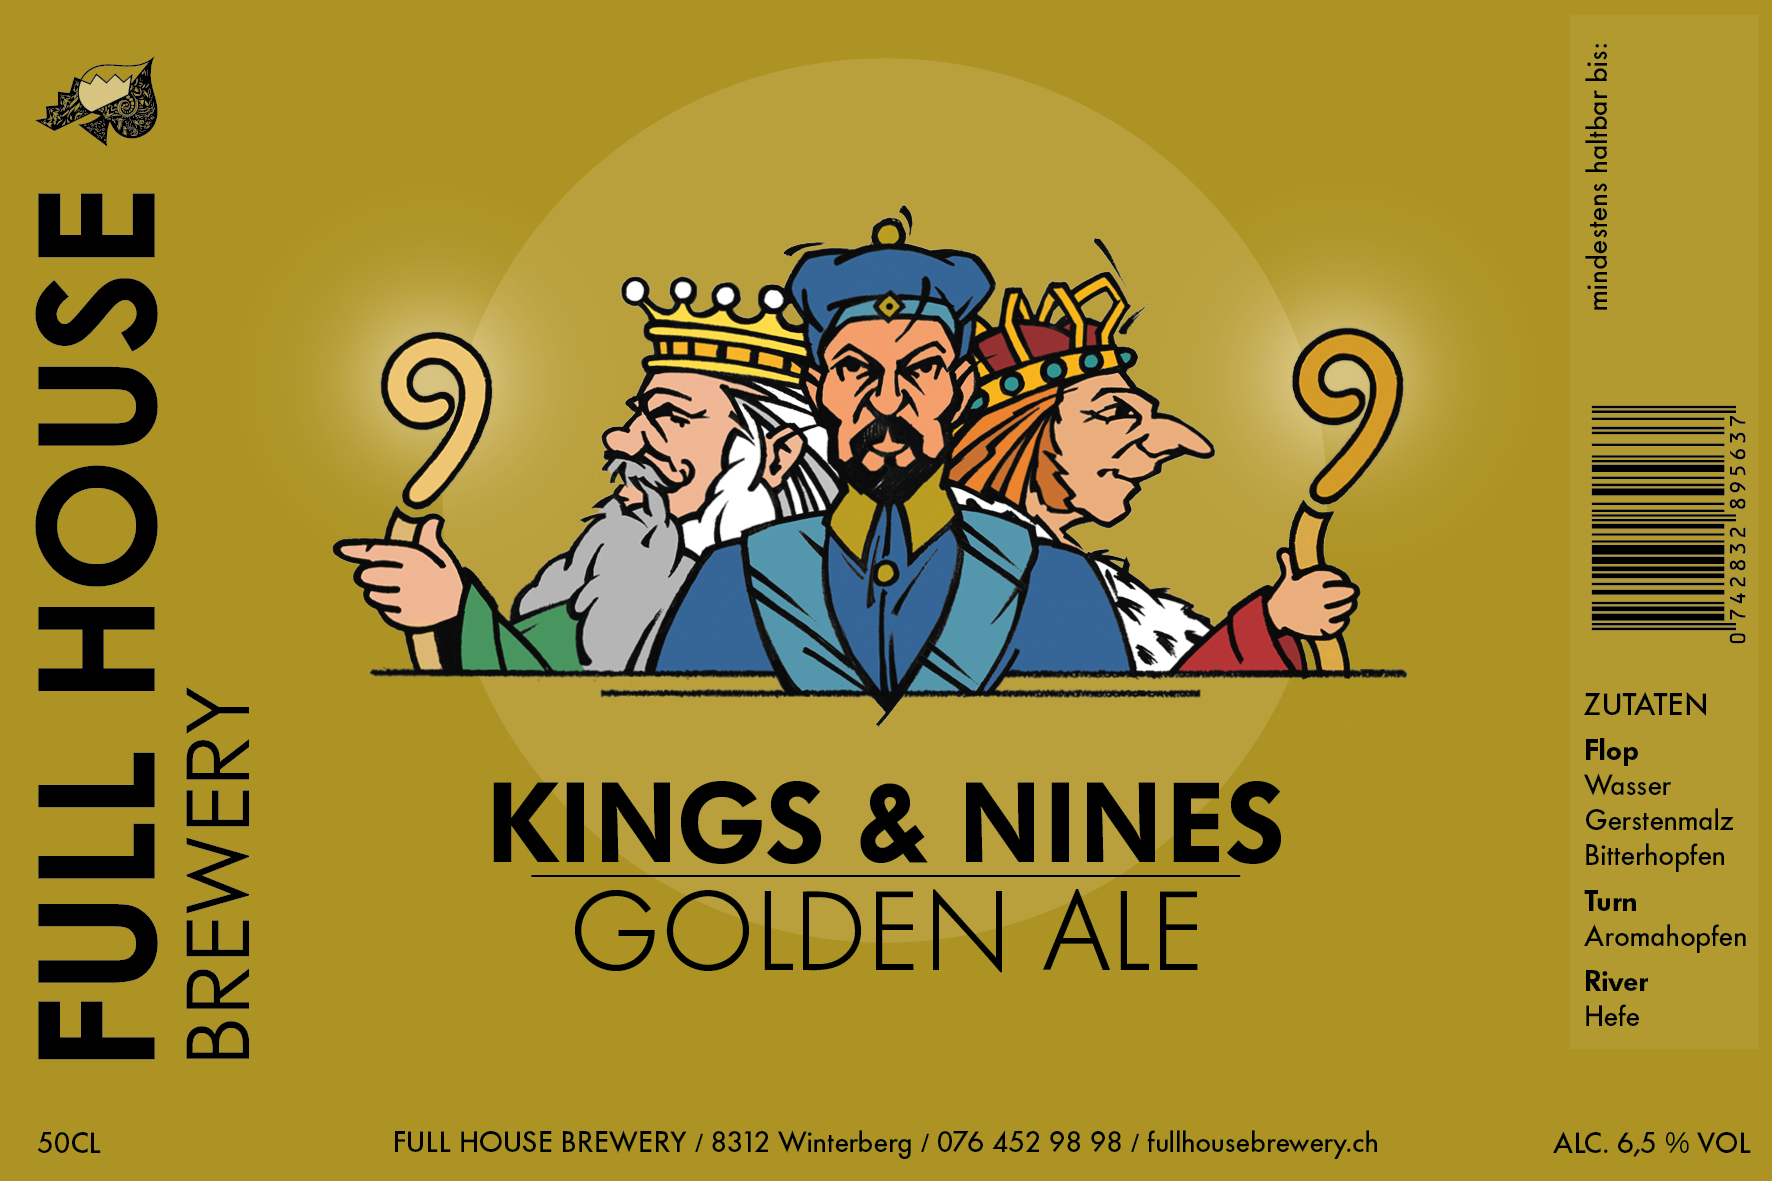 Kings & Nines Golden Ale